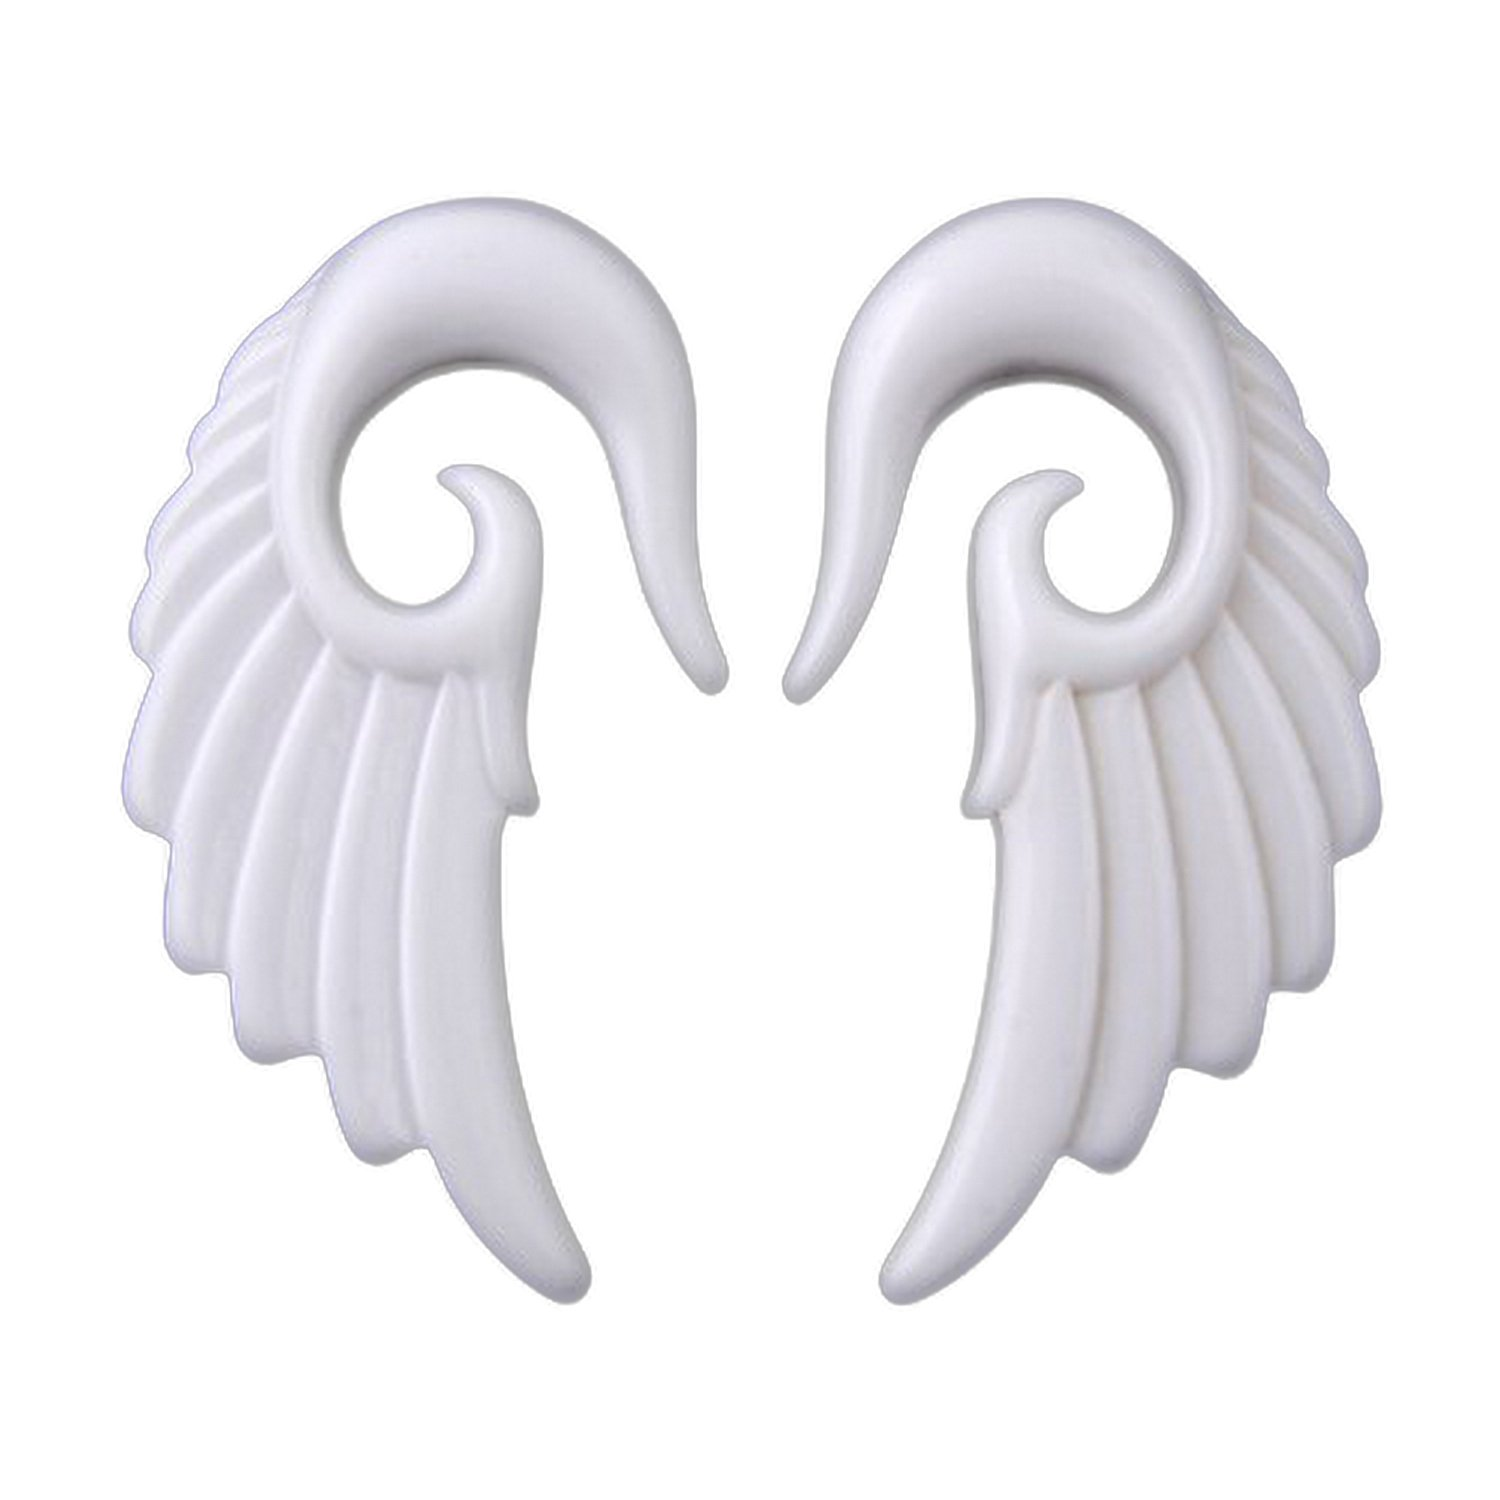 JewelryVolt Pair White Acrylic Angel Wing Design Ear Taper Plugs Gauges - 4G